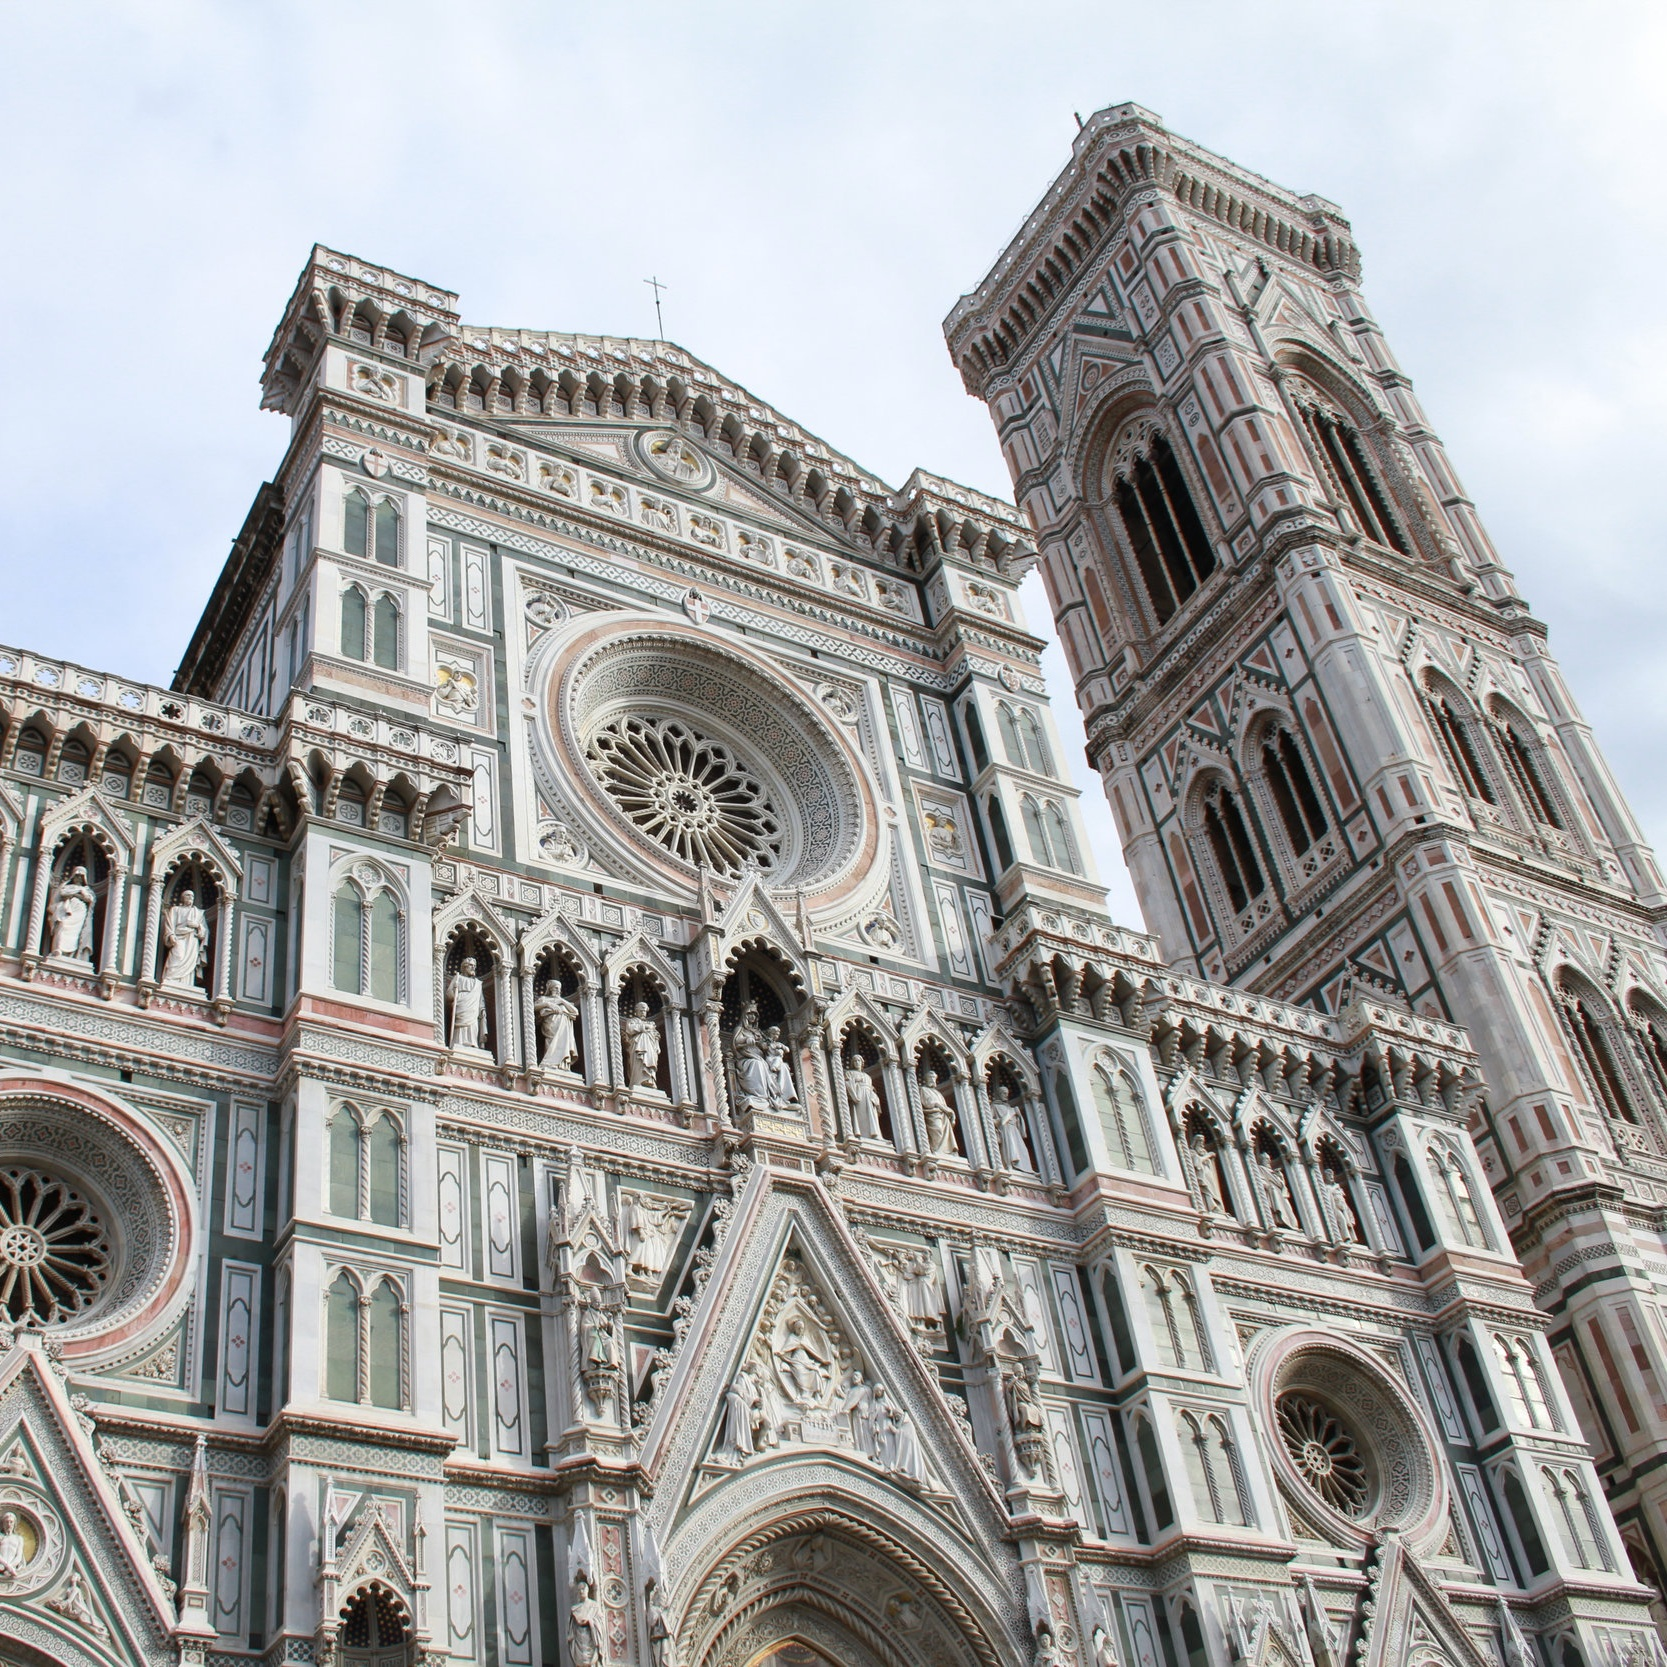 The Duomo in the heart of Florence